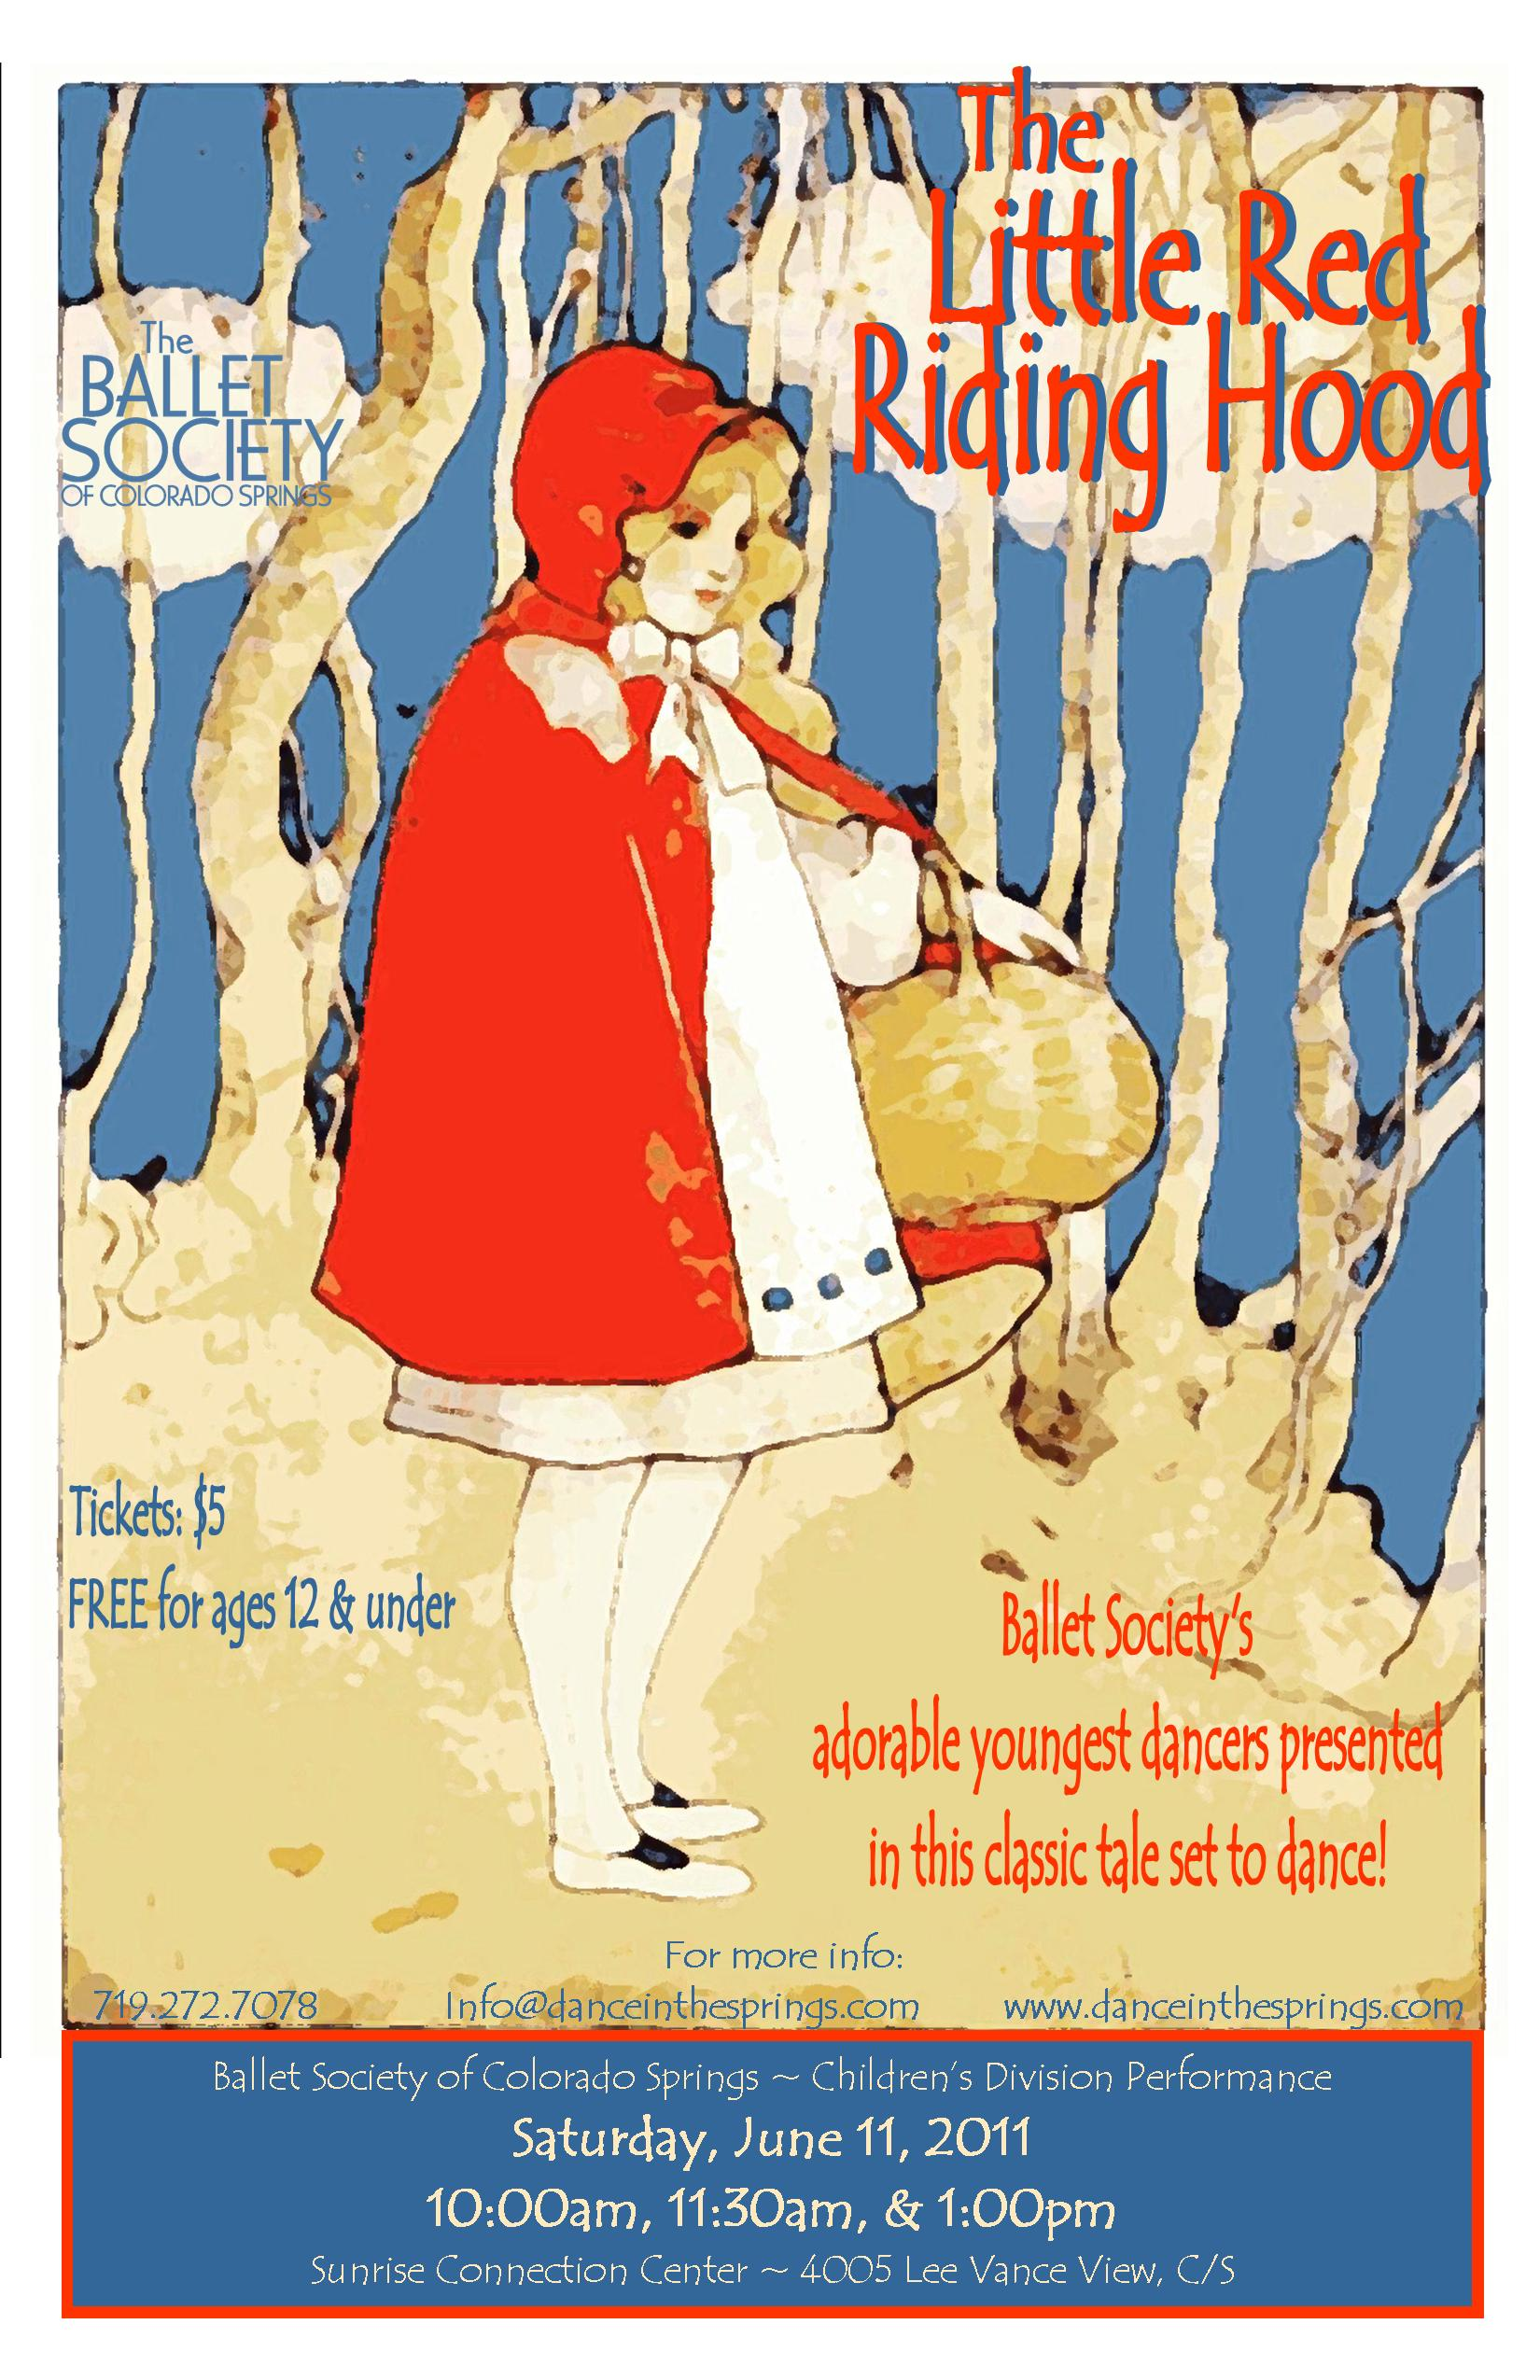 2011-6-11 Little Red Riding Hood poster